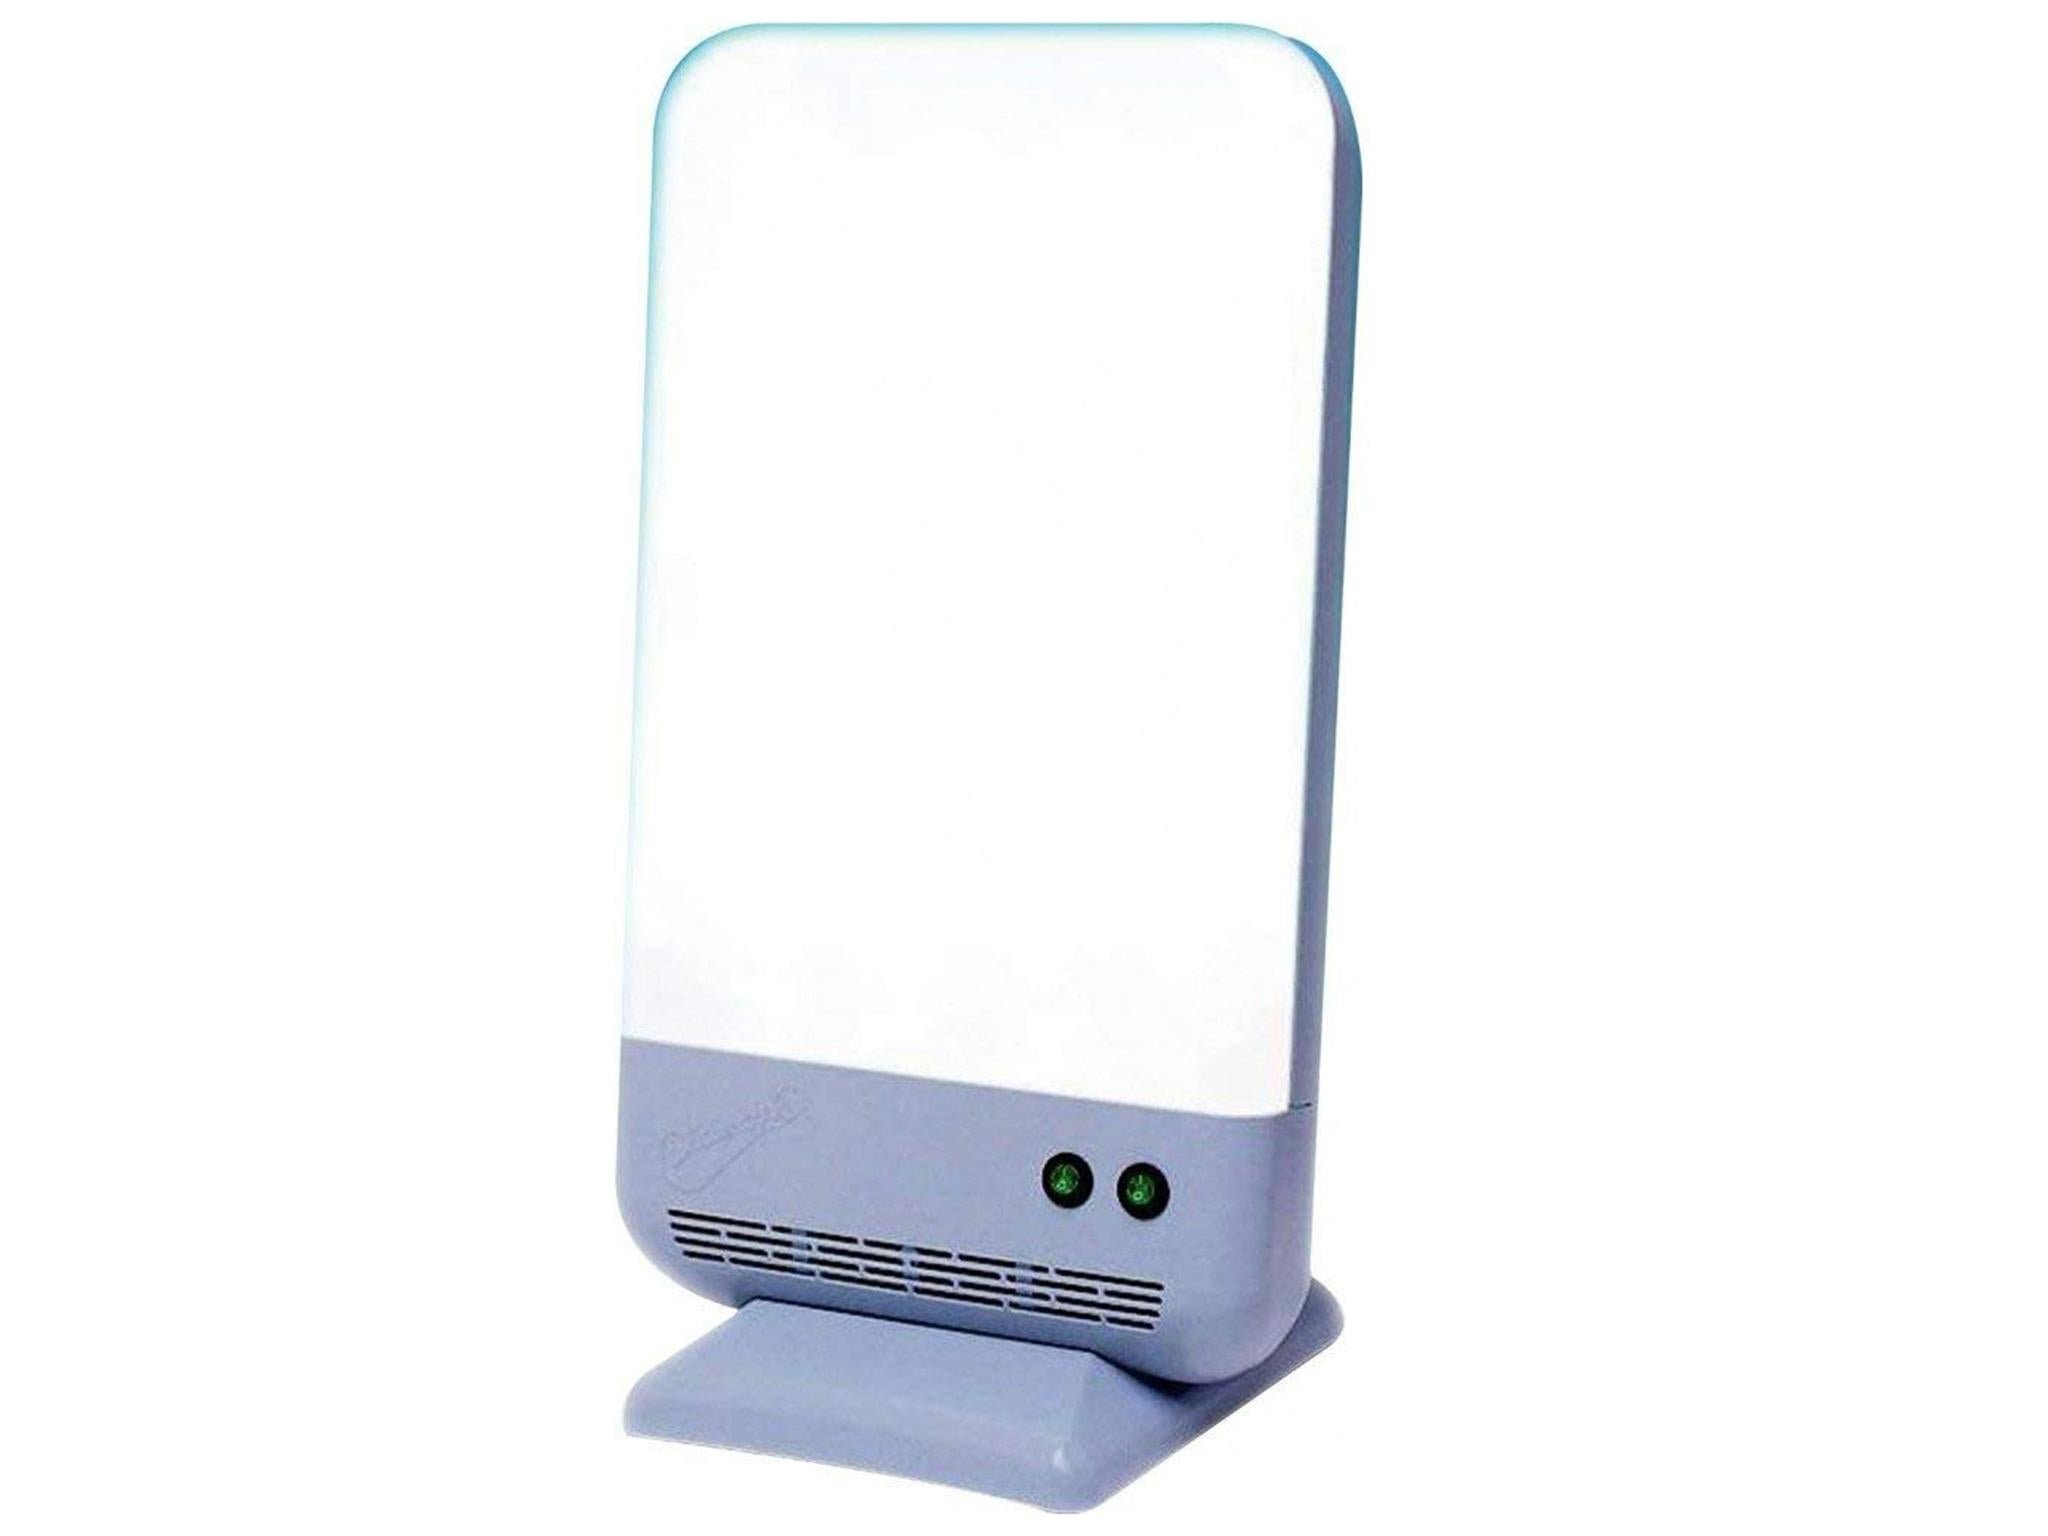 10 Best Sad Lamps The Independent 15 Hour Lamp Fader Sunset Power 10000 Lux This